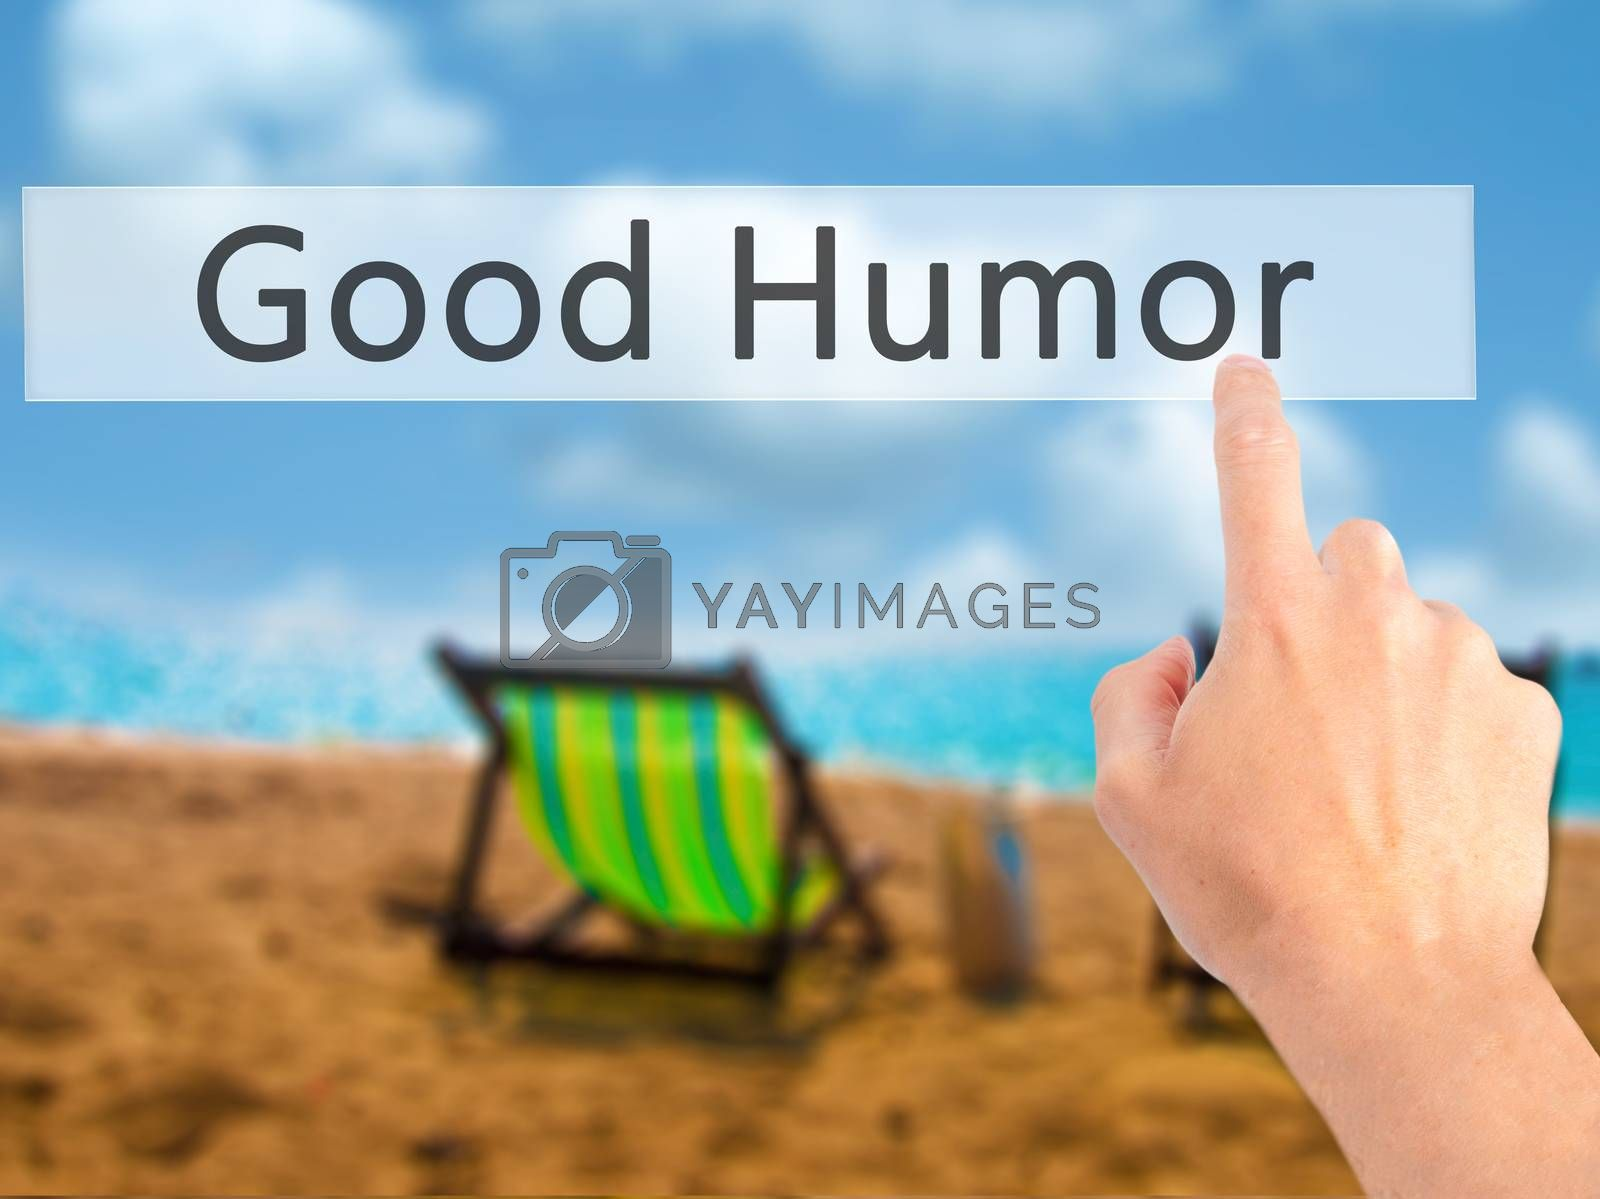 Good Humor - Hand pressing a button on blurred background concep by netsay.net